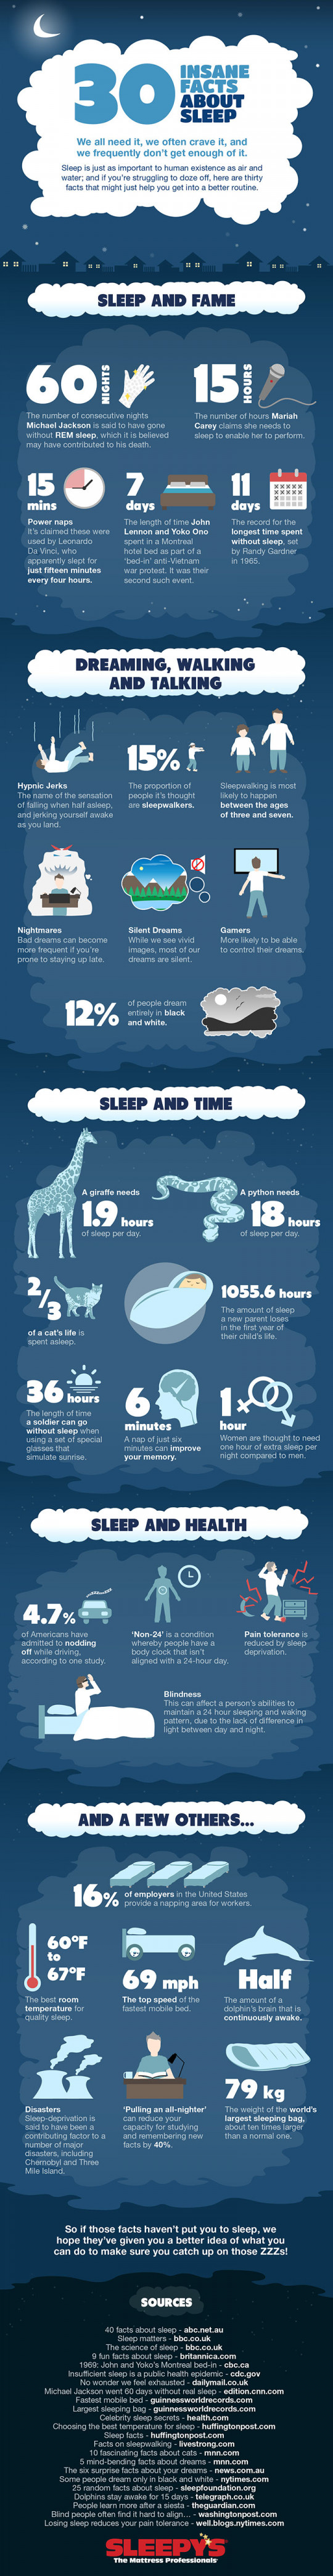 30 Insane Facts About Sleep